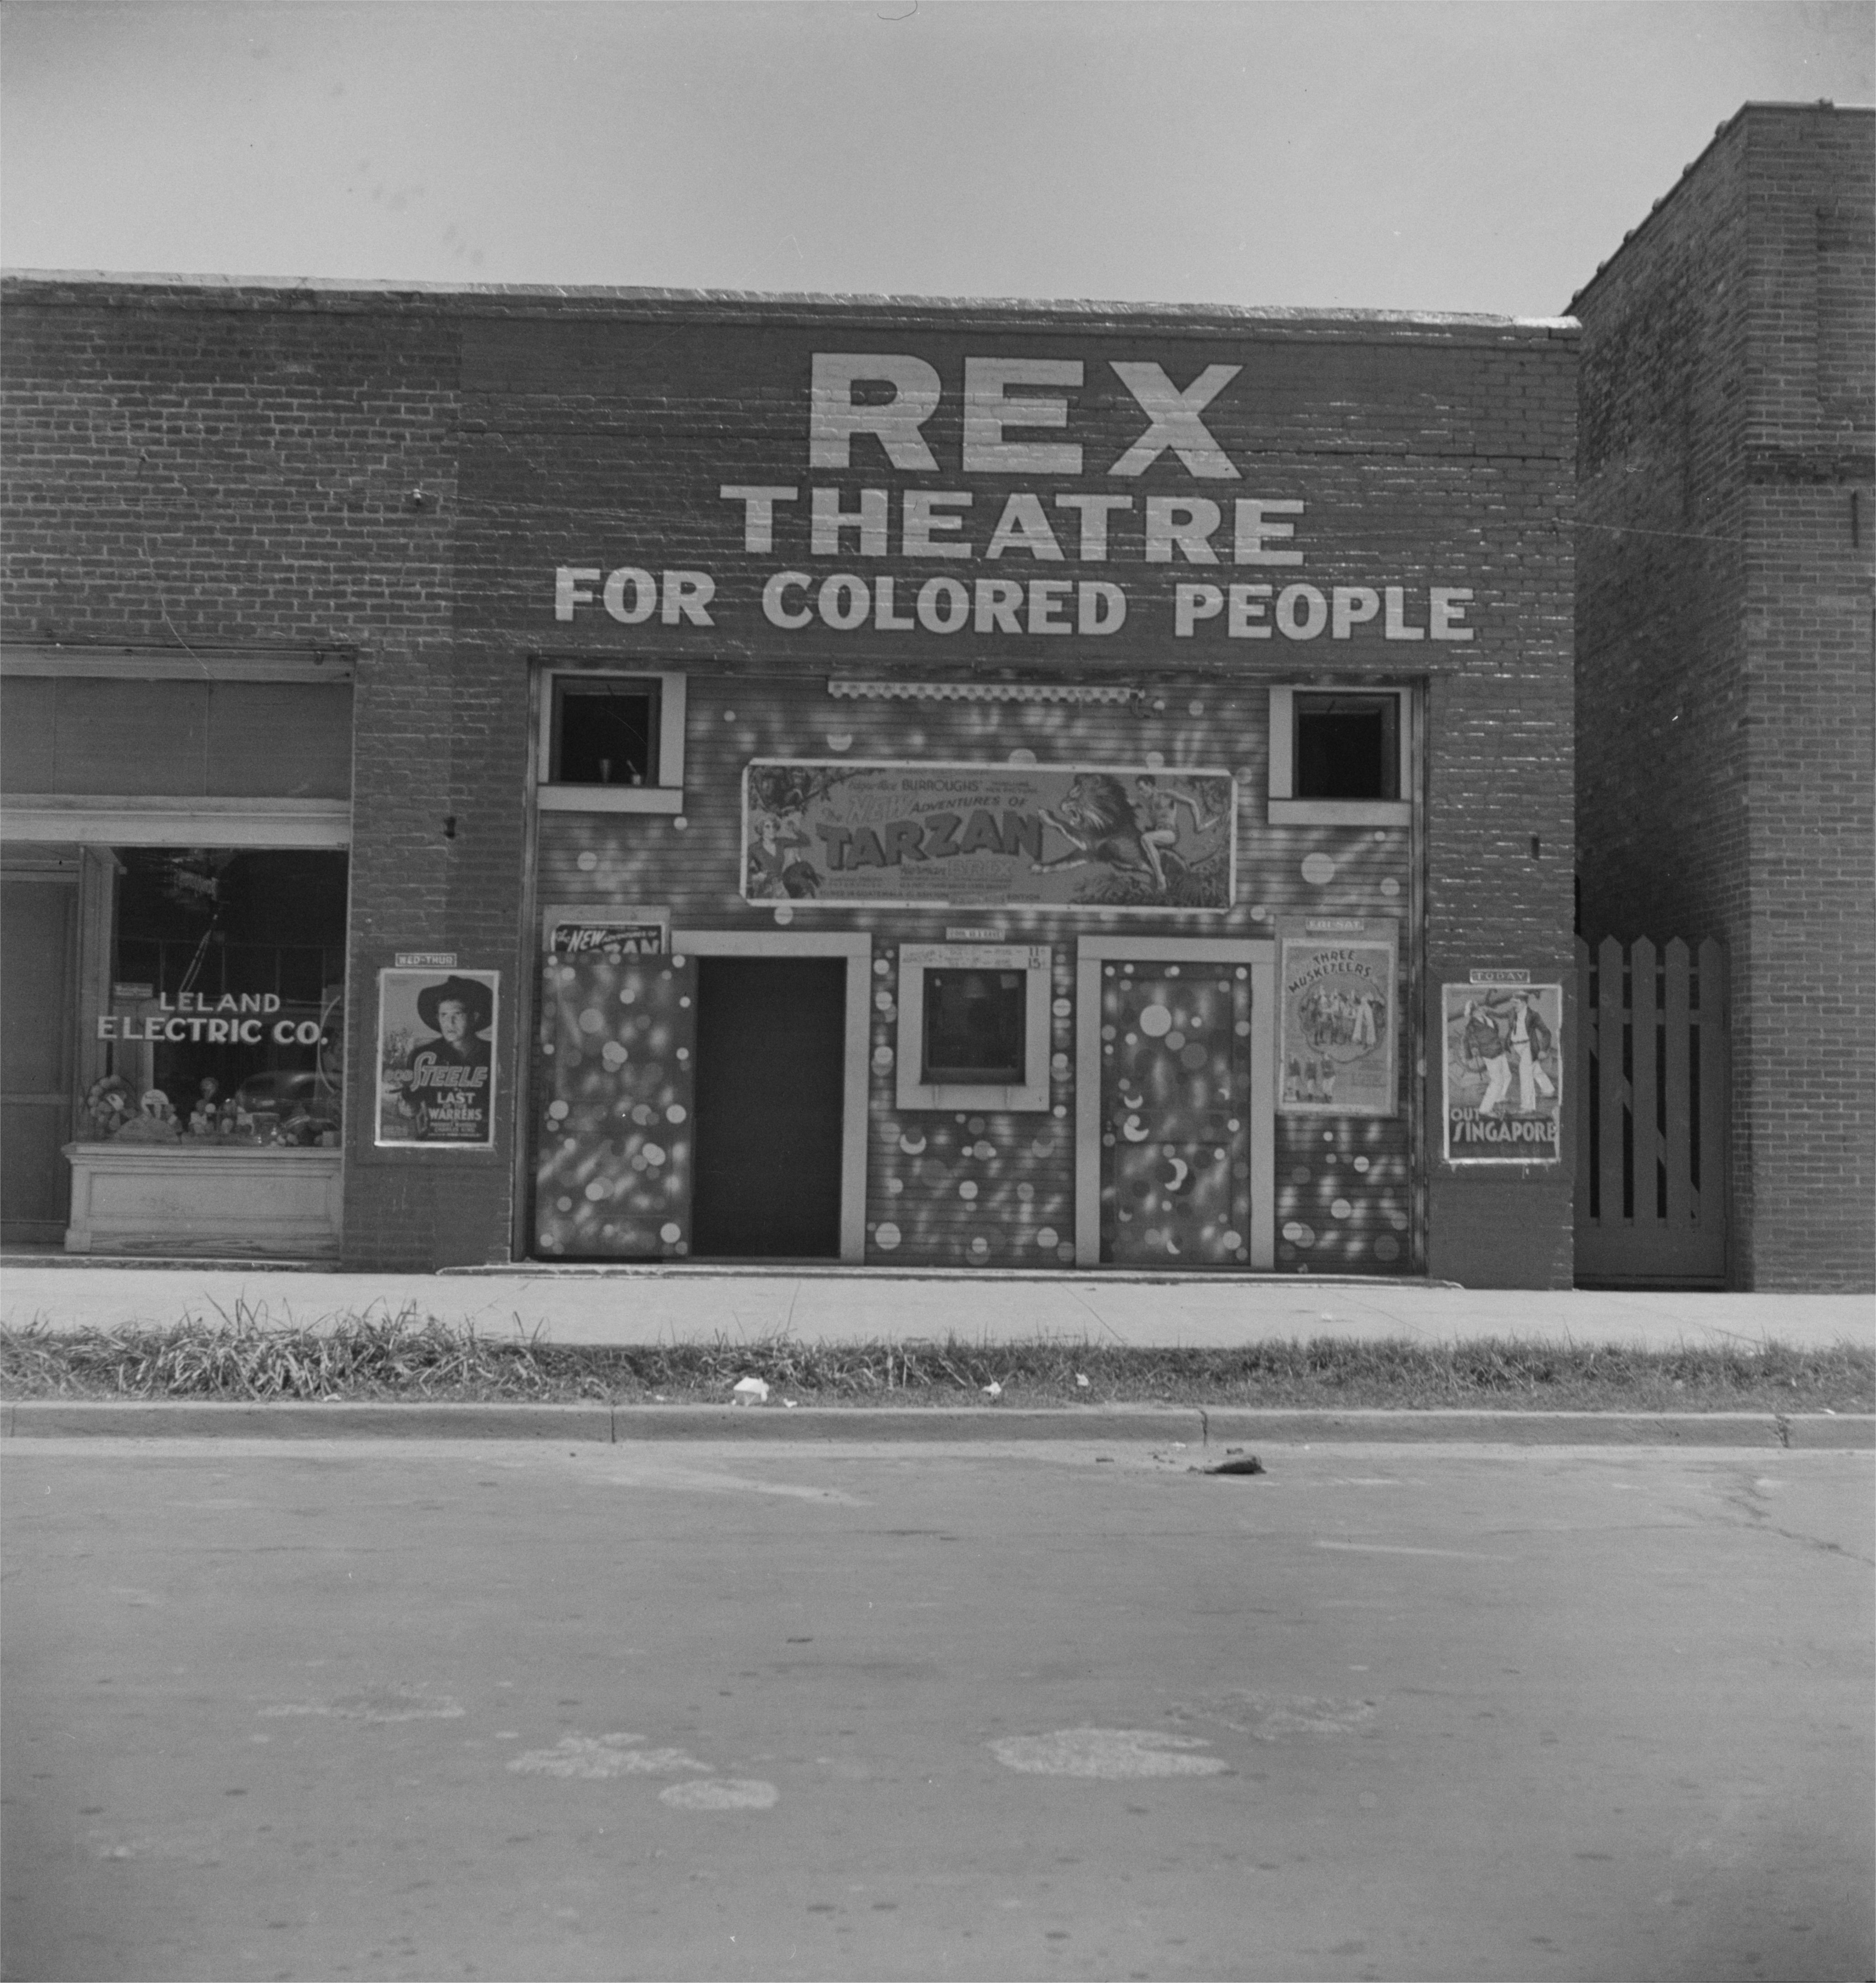 Segregation - Rex Theatre for Colored People